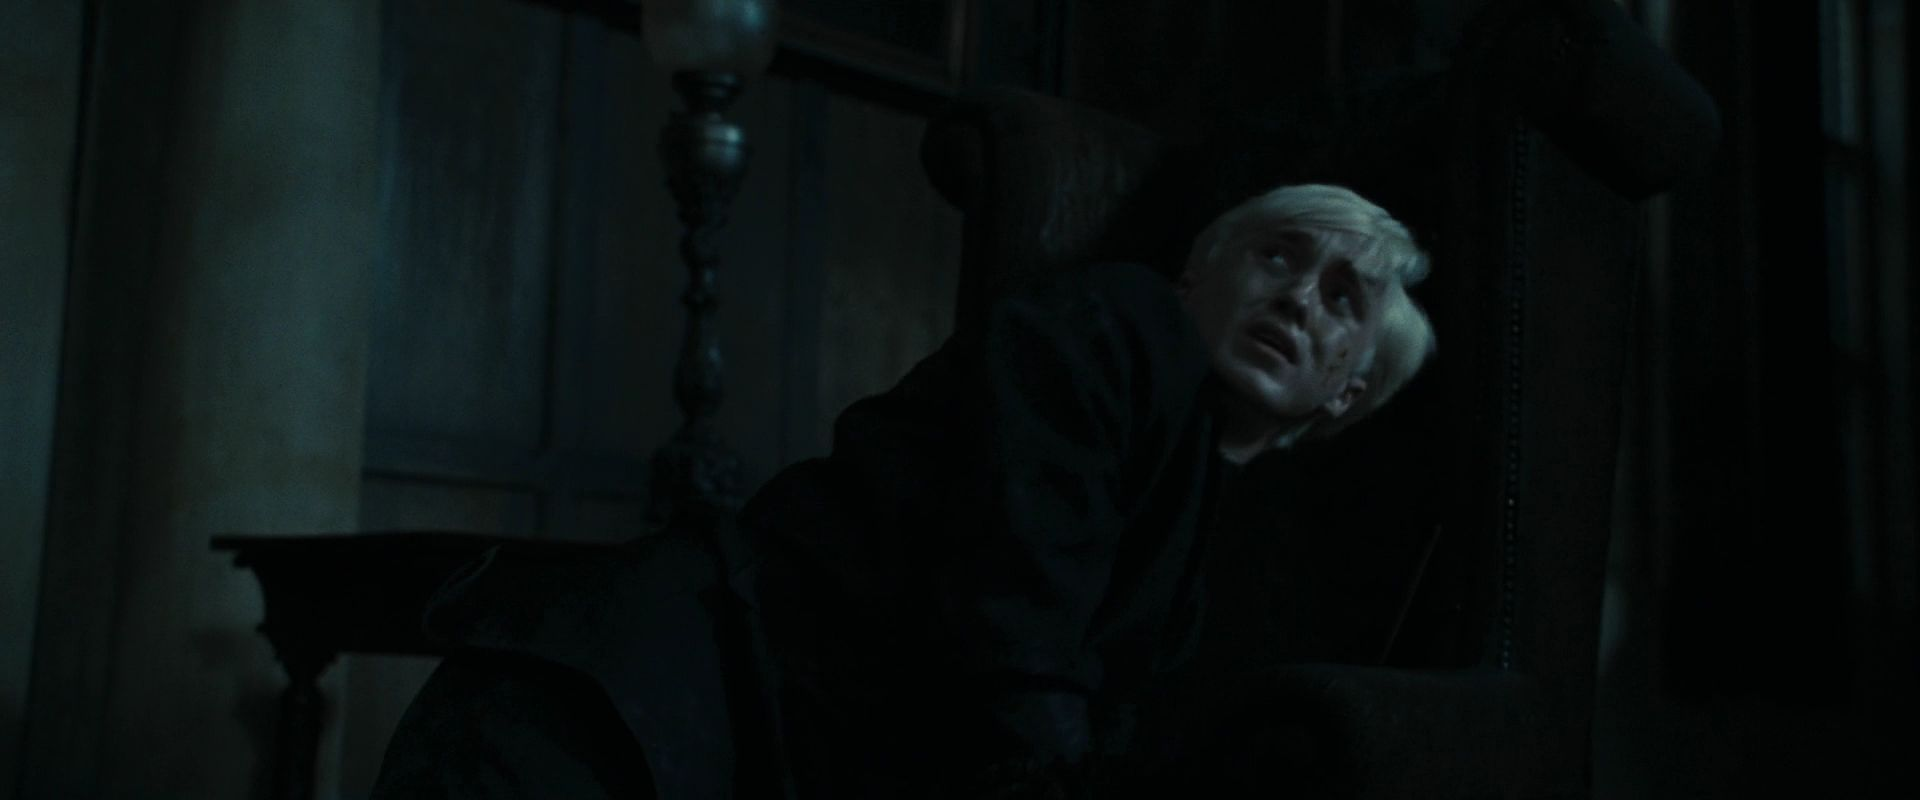 Draco malfoy draco in dh part 1